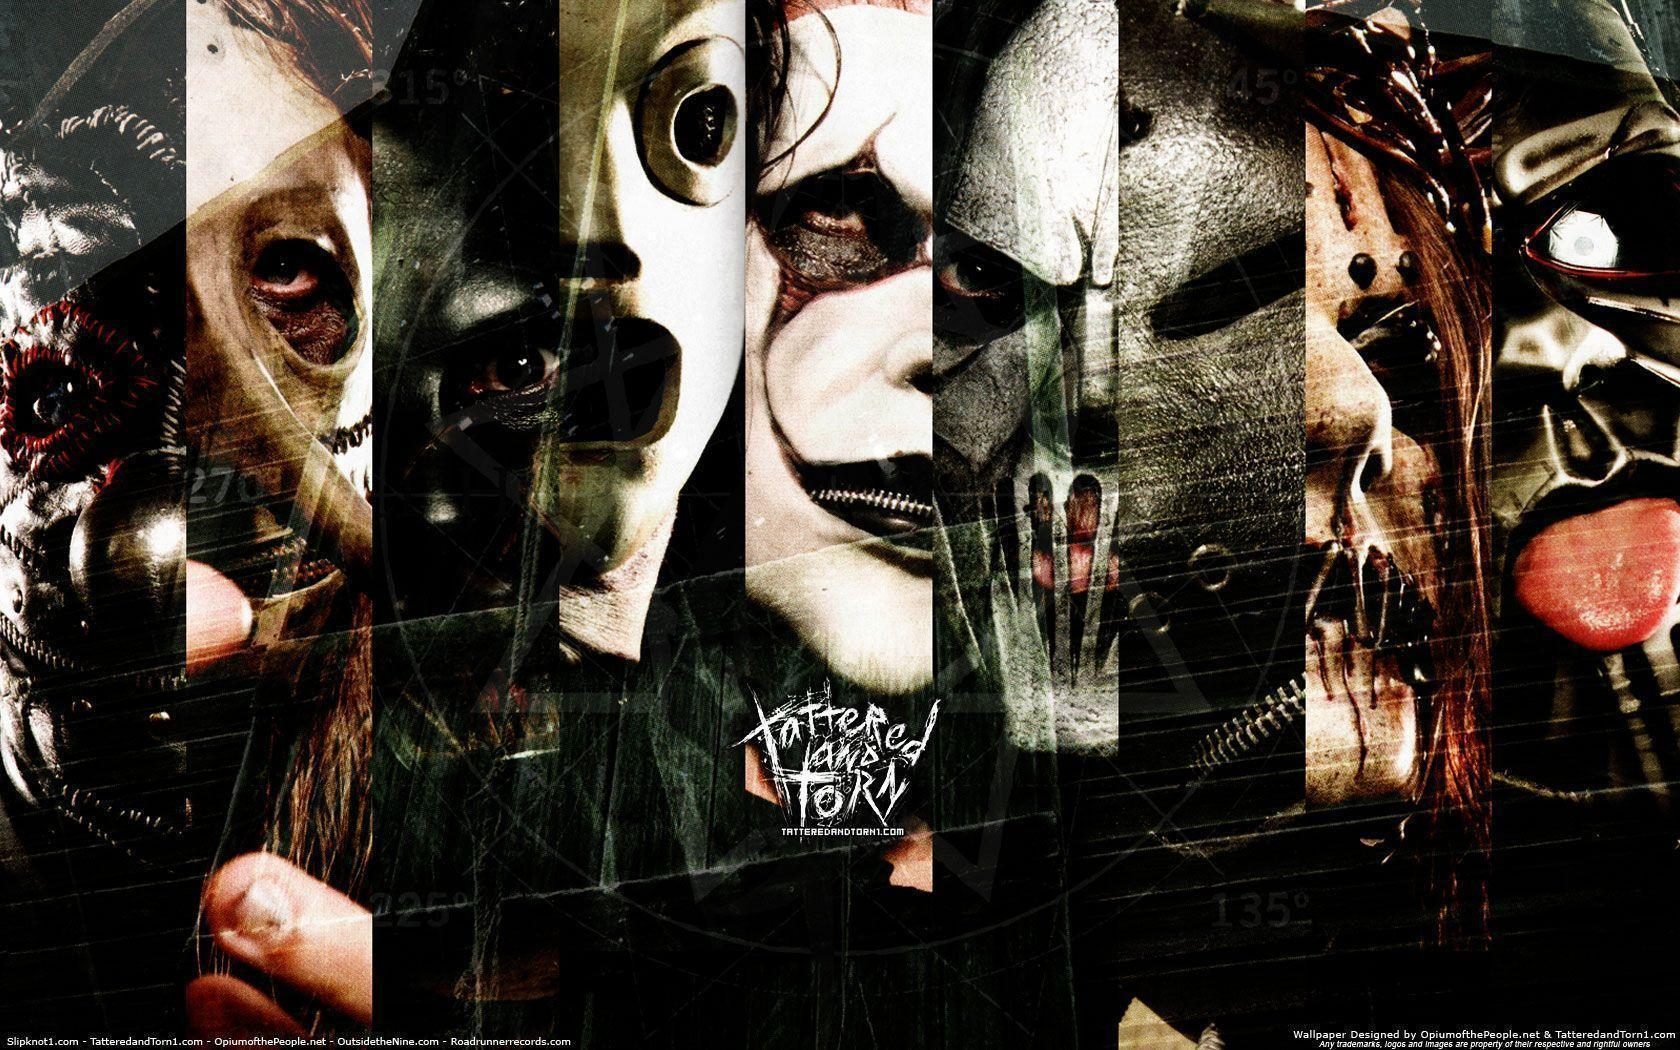 Joey jordison style favor photos pictures and wallpapers for - Hd Wallpapers Slipknot Logo 320 X 480 39 Kb Jpeg Hd Wallpapers